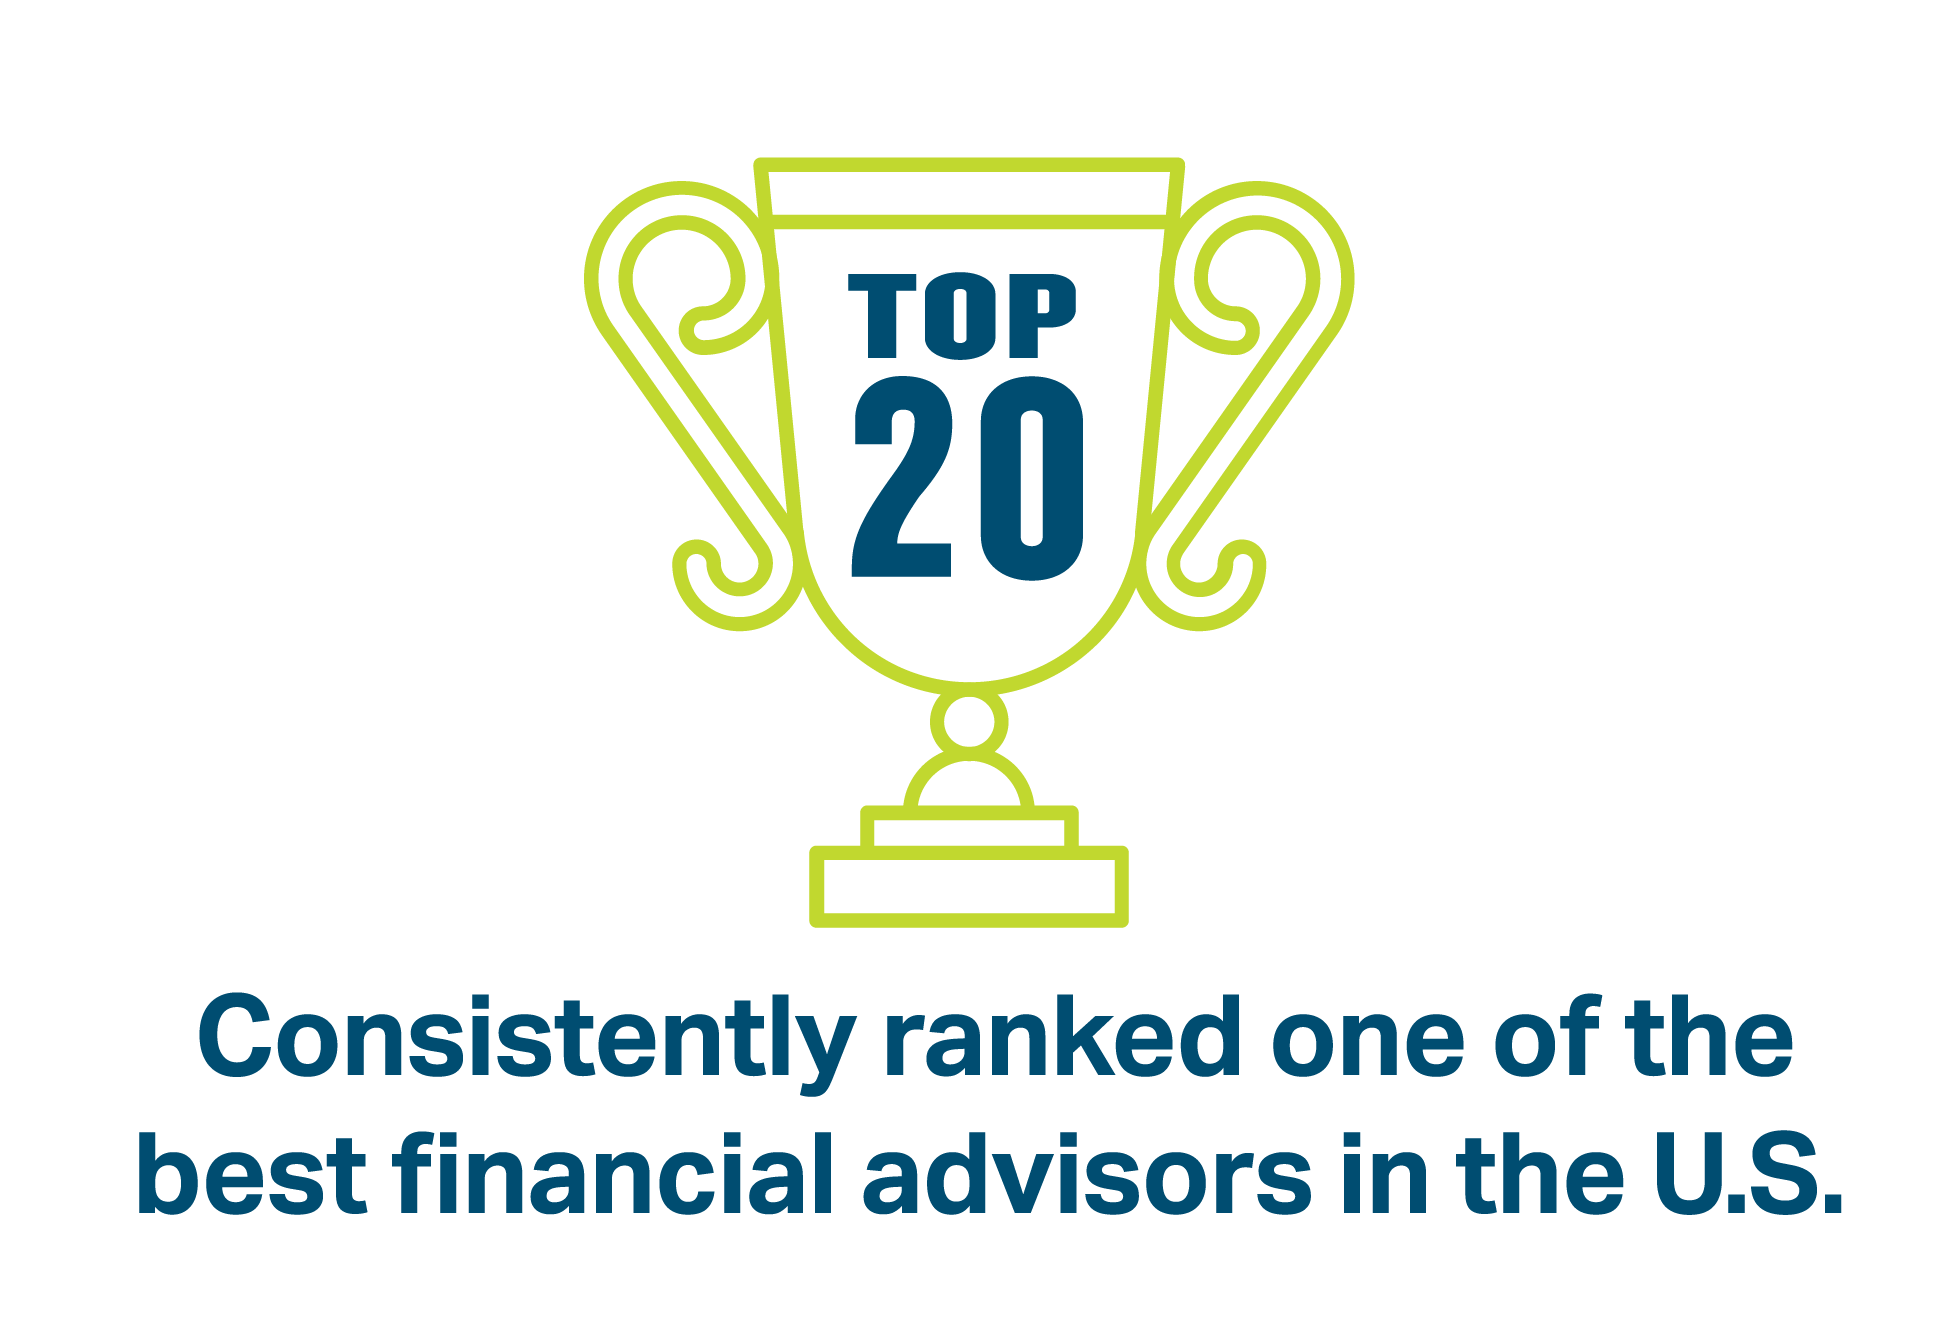 DD&F is consistently ranked one of the best financial advisors in the U.S. by S&P Global Market Intelligence